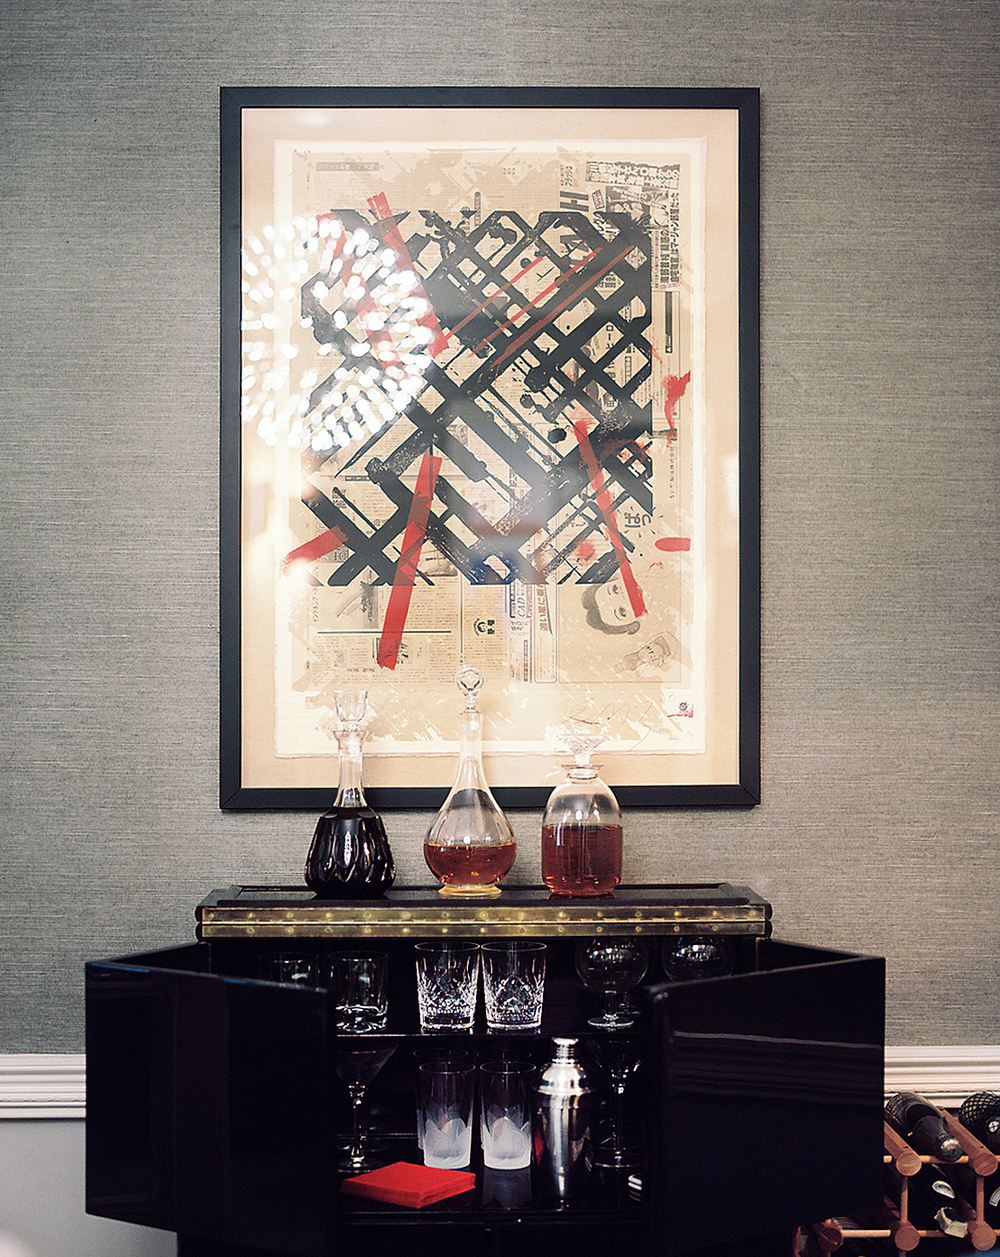 Park avenue deco bar cabinet. Photo by Patrick Cline.